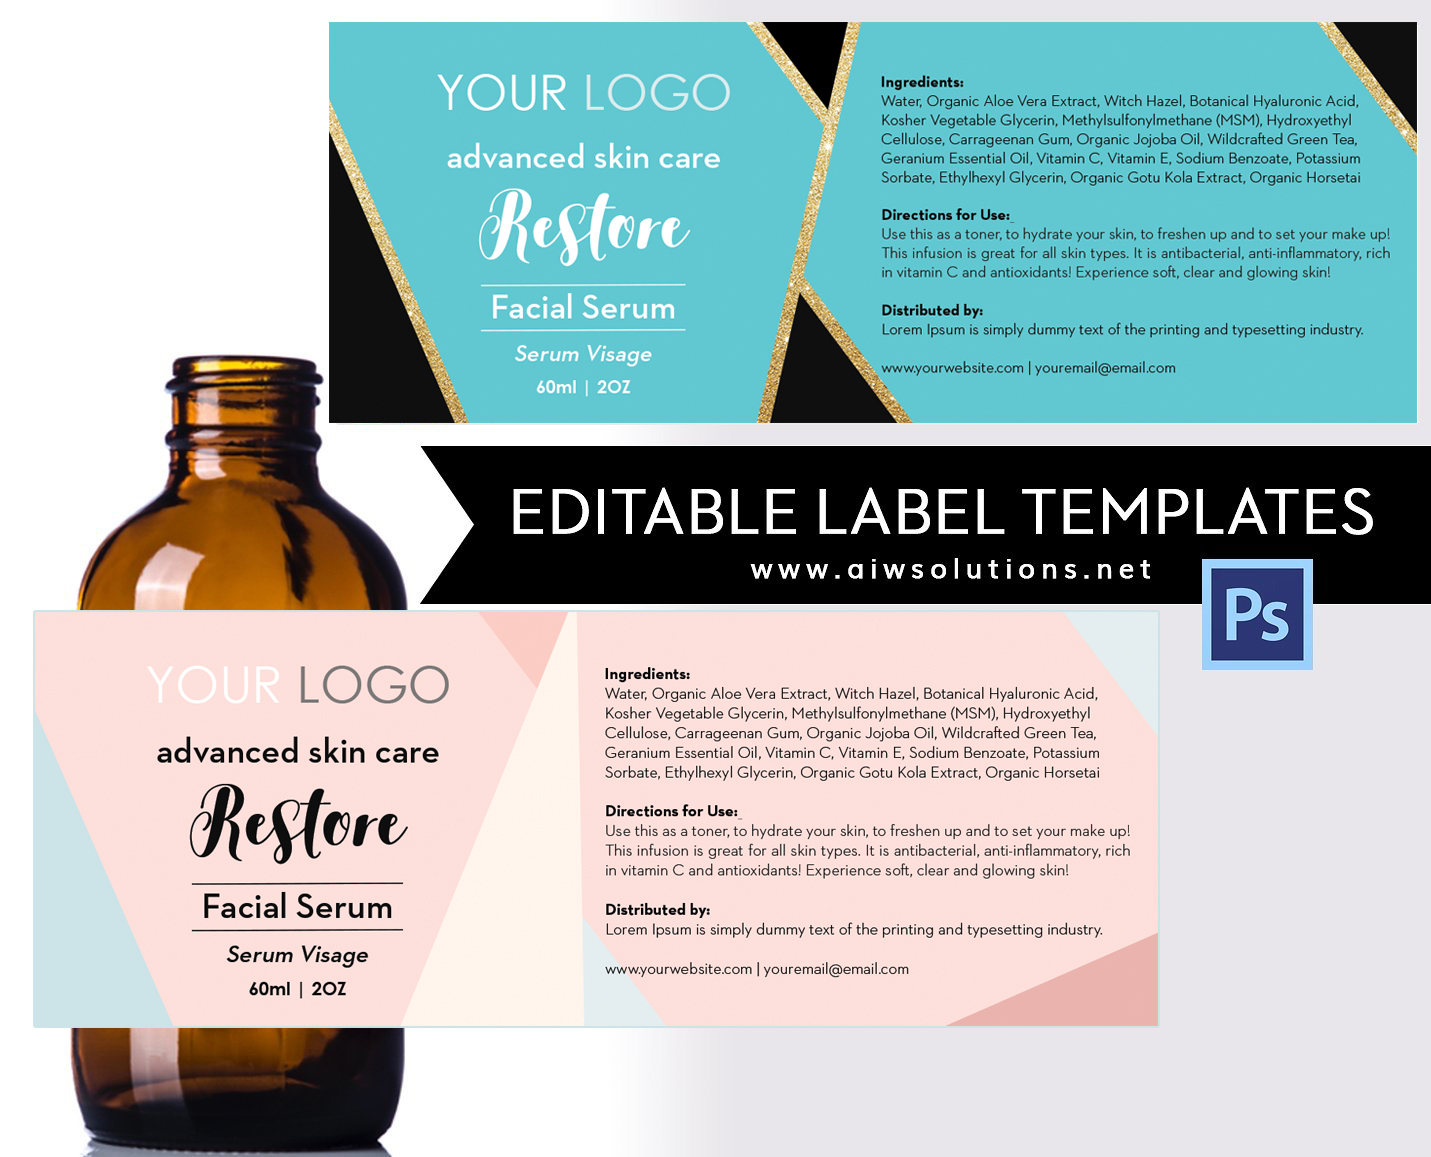 Serum label template id18 aiwsolutions editable facial serum label pronofoot35fo Images